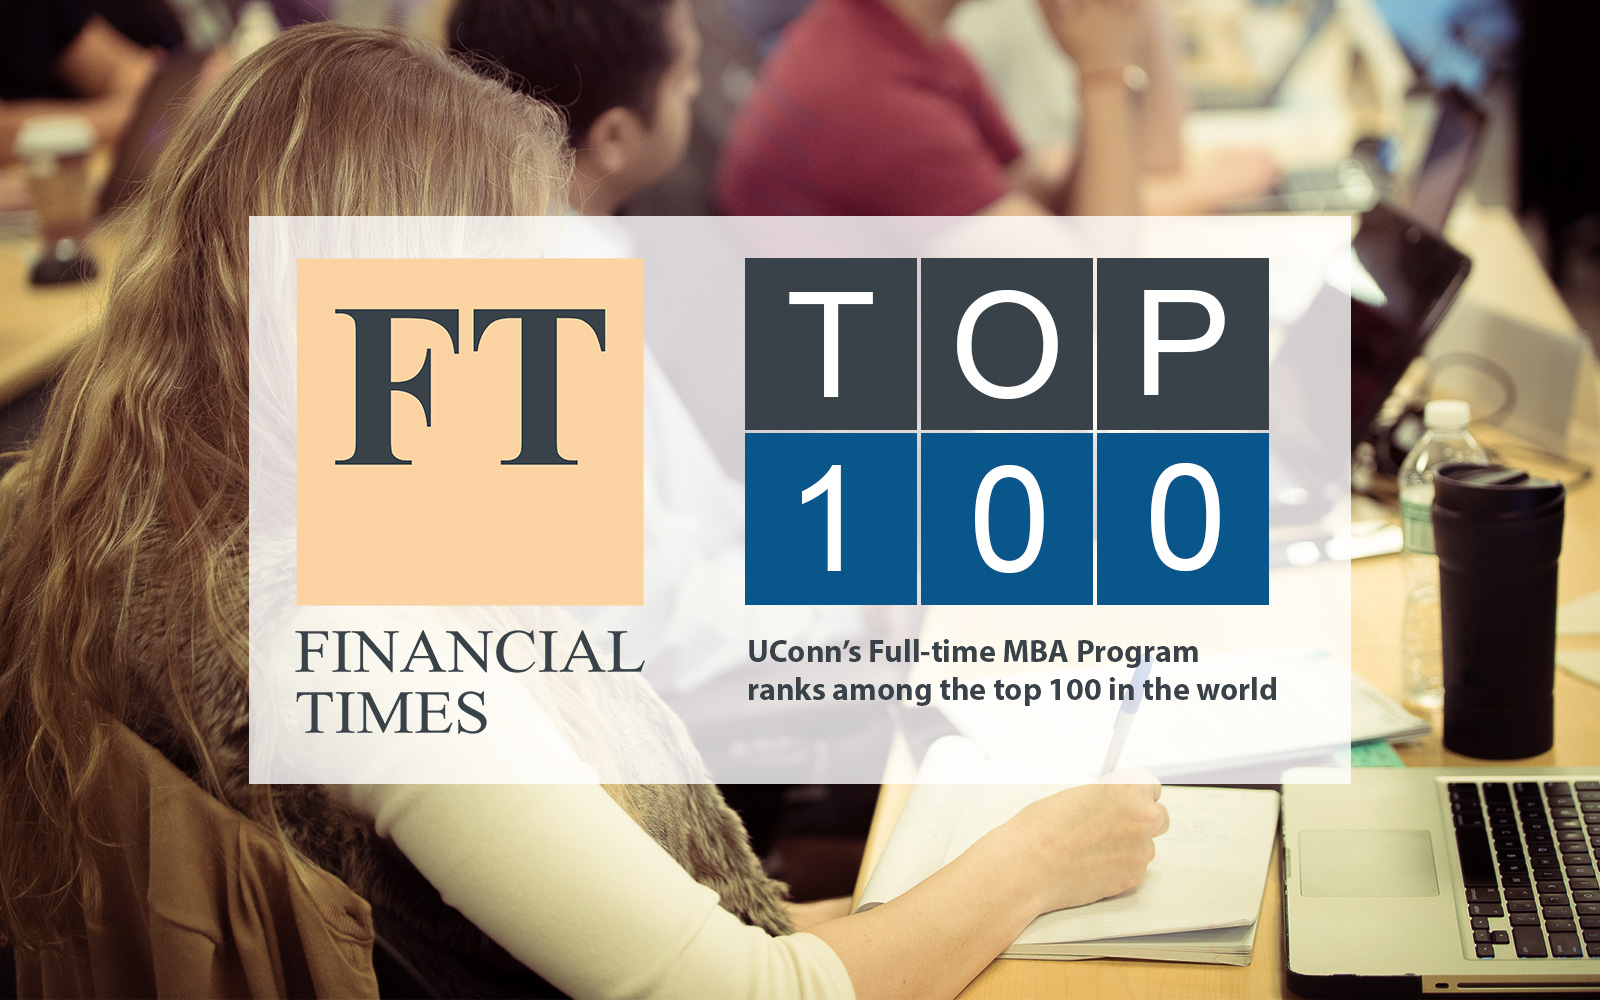 Financial Times: UConn's MBA Program Ranks Among Best in the World